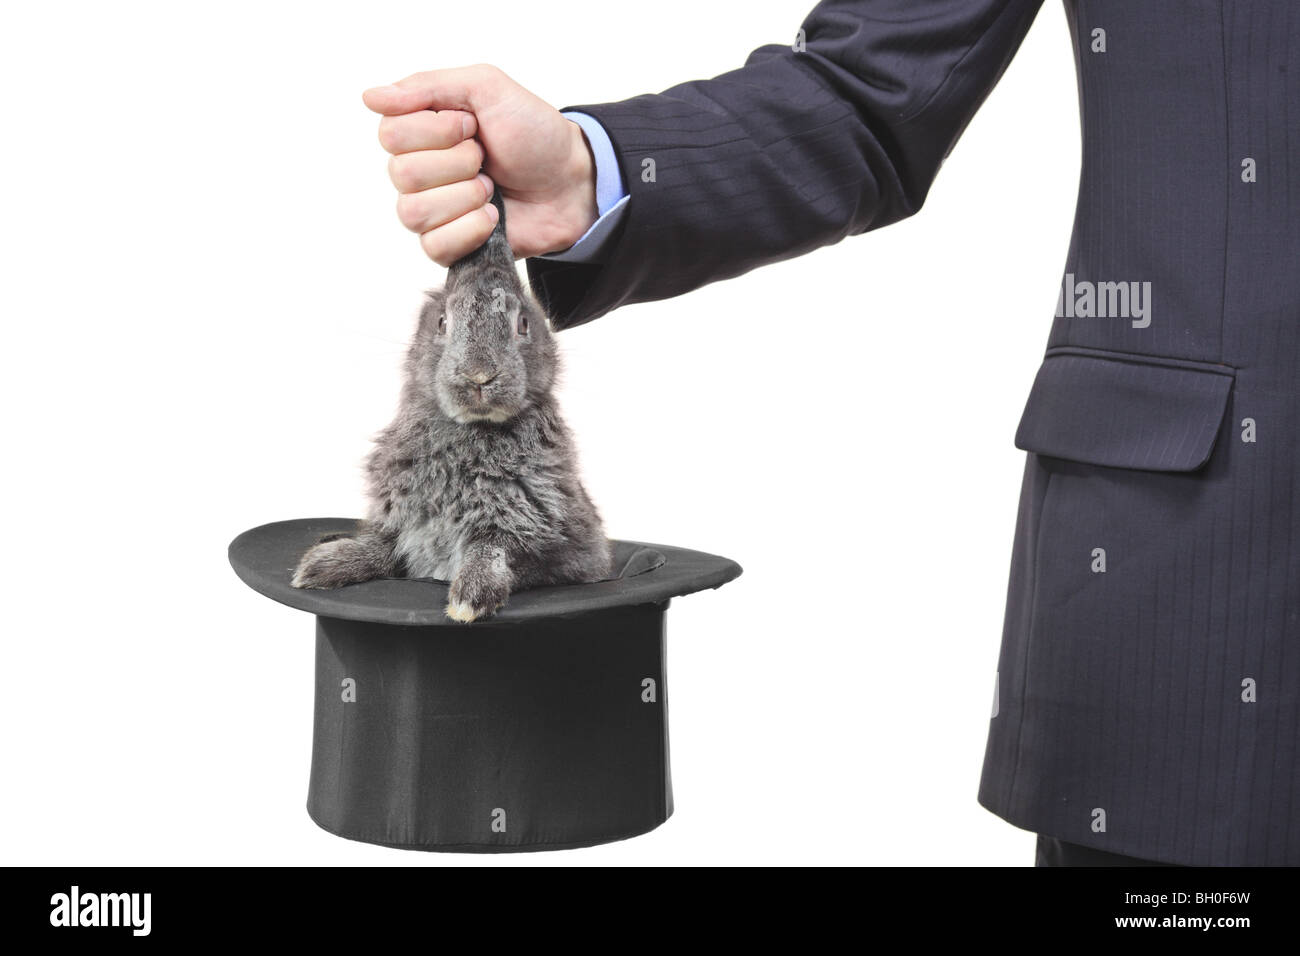 Magician holding a rabbit isolated on white background - Stock Image